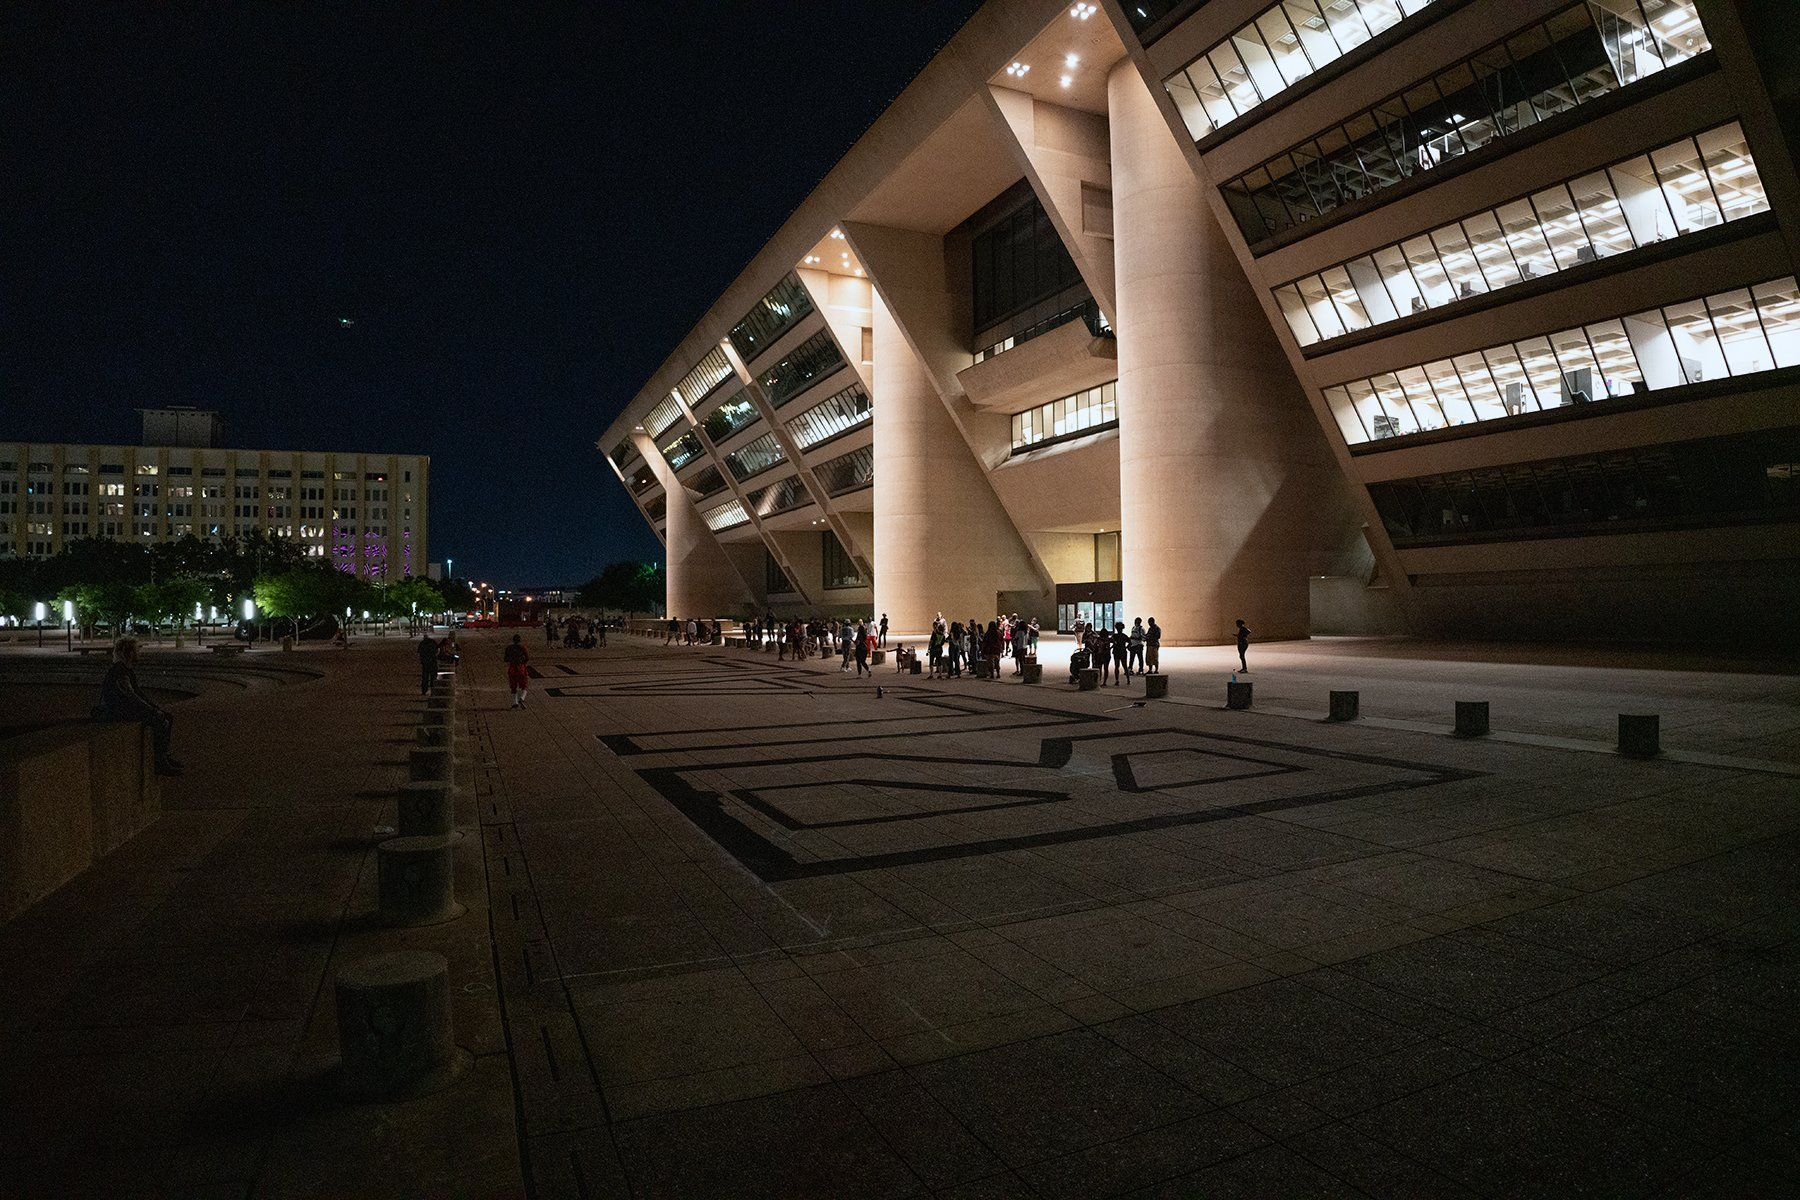 On the Plaza of Dallas City Hall, 'Black Lives Matter' D